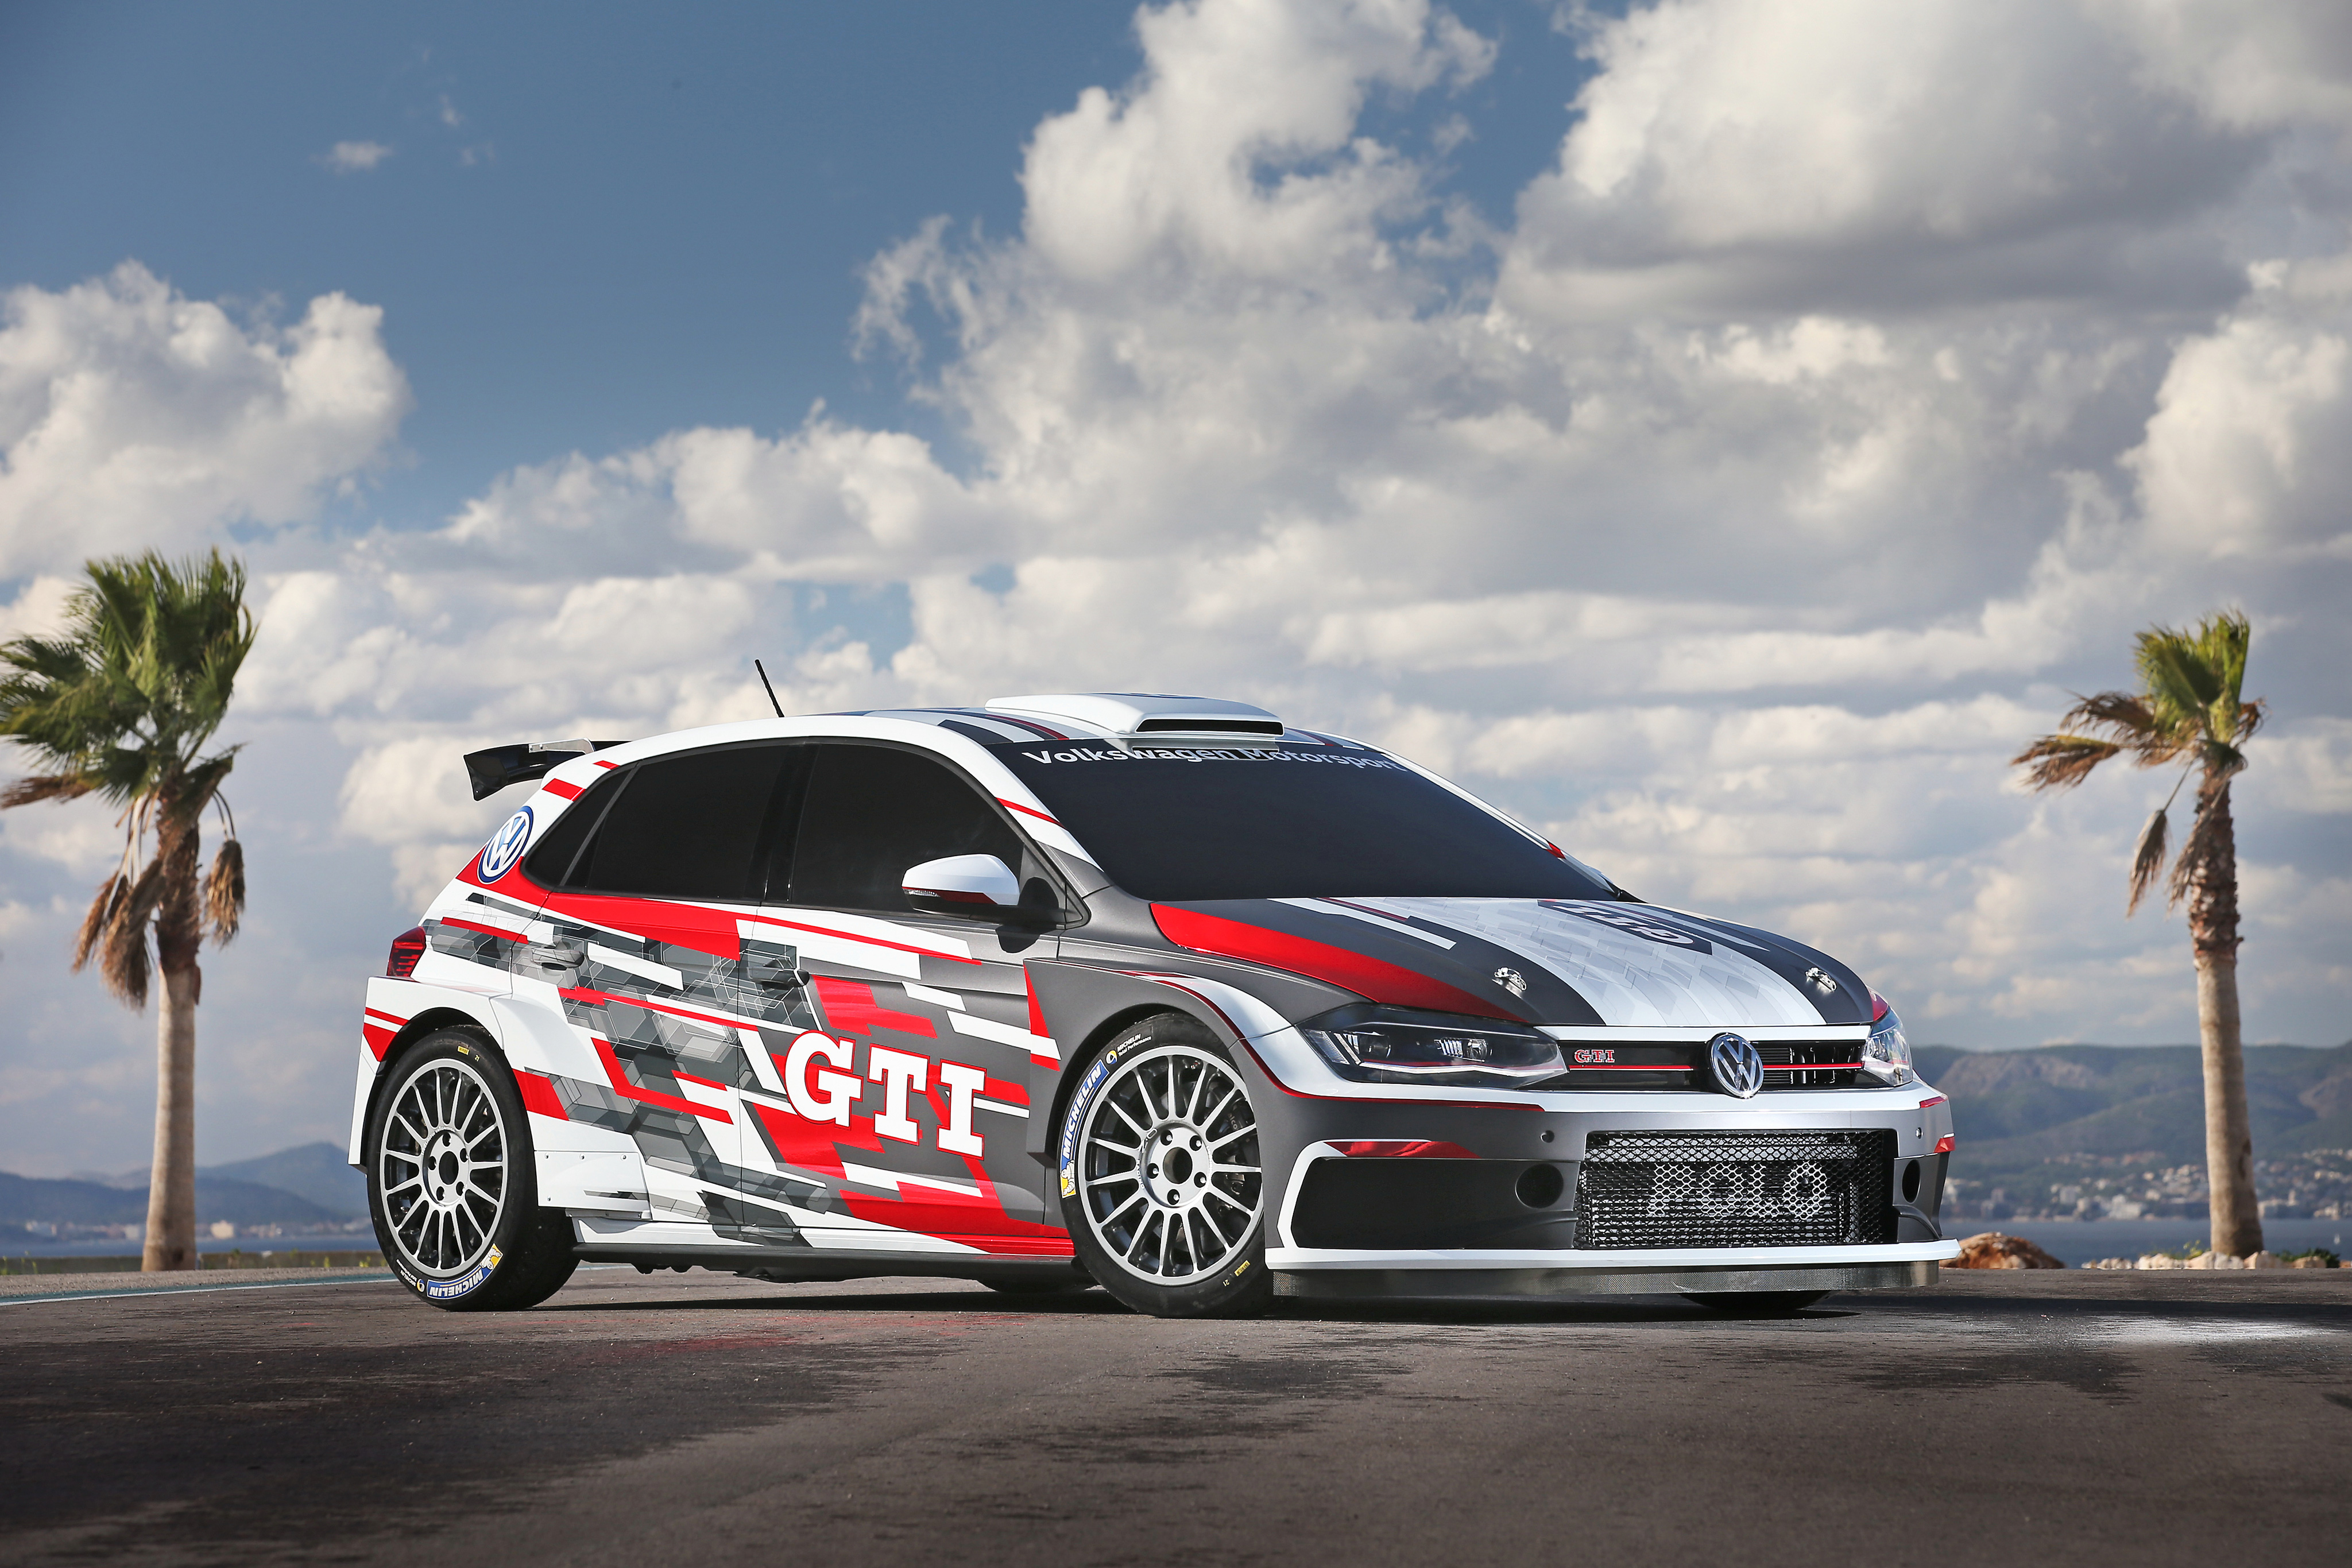 volkswagen polo gti r5 2018 4k, hd cars, 4k wallpapers, images